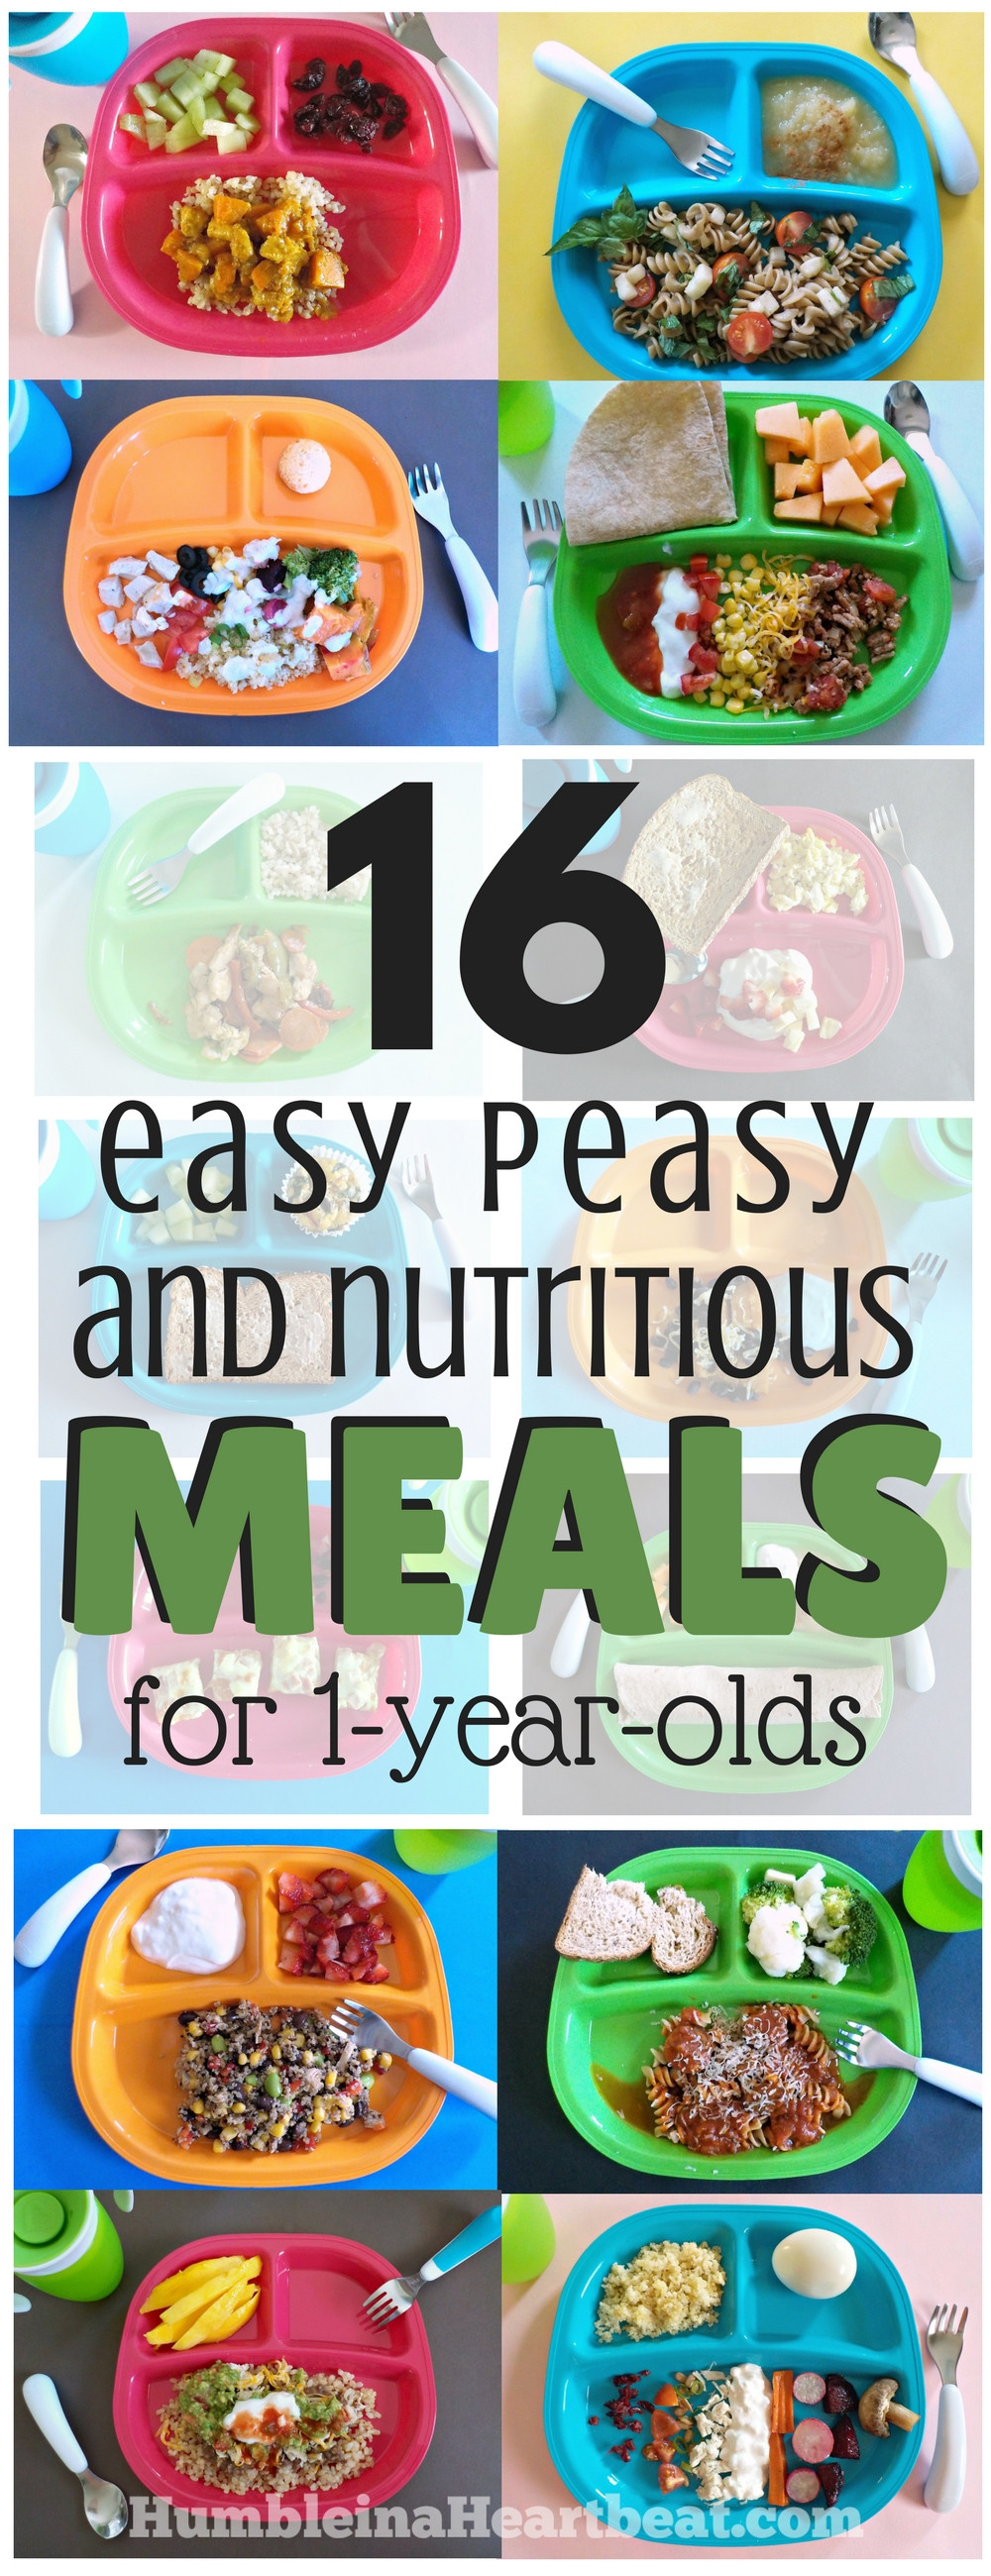 Healthy Snacks For 1 Year Old  16 Simple Meals for Your 1 Year Old that Will Make You